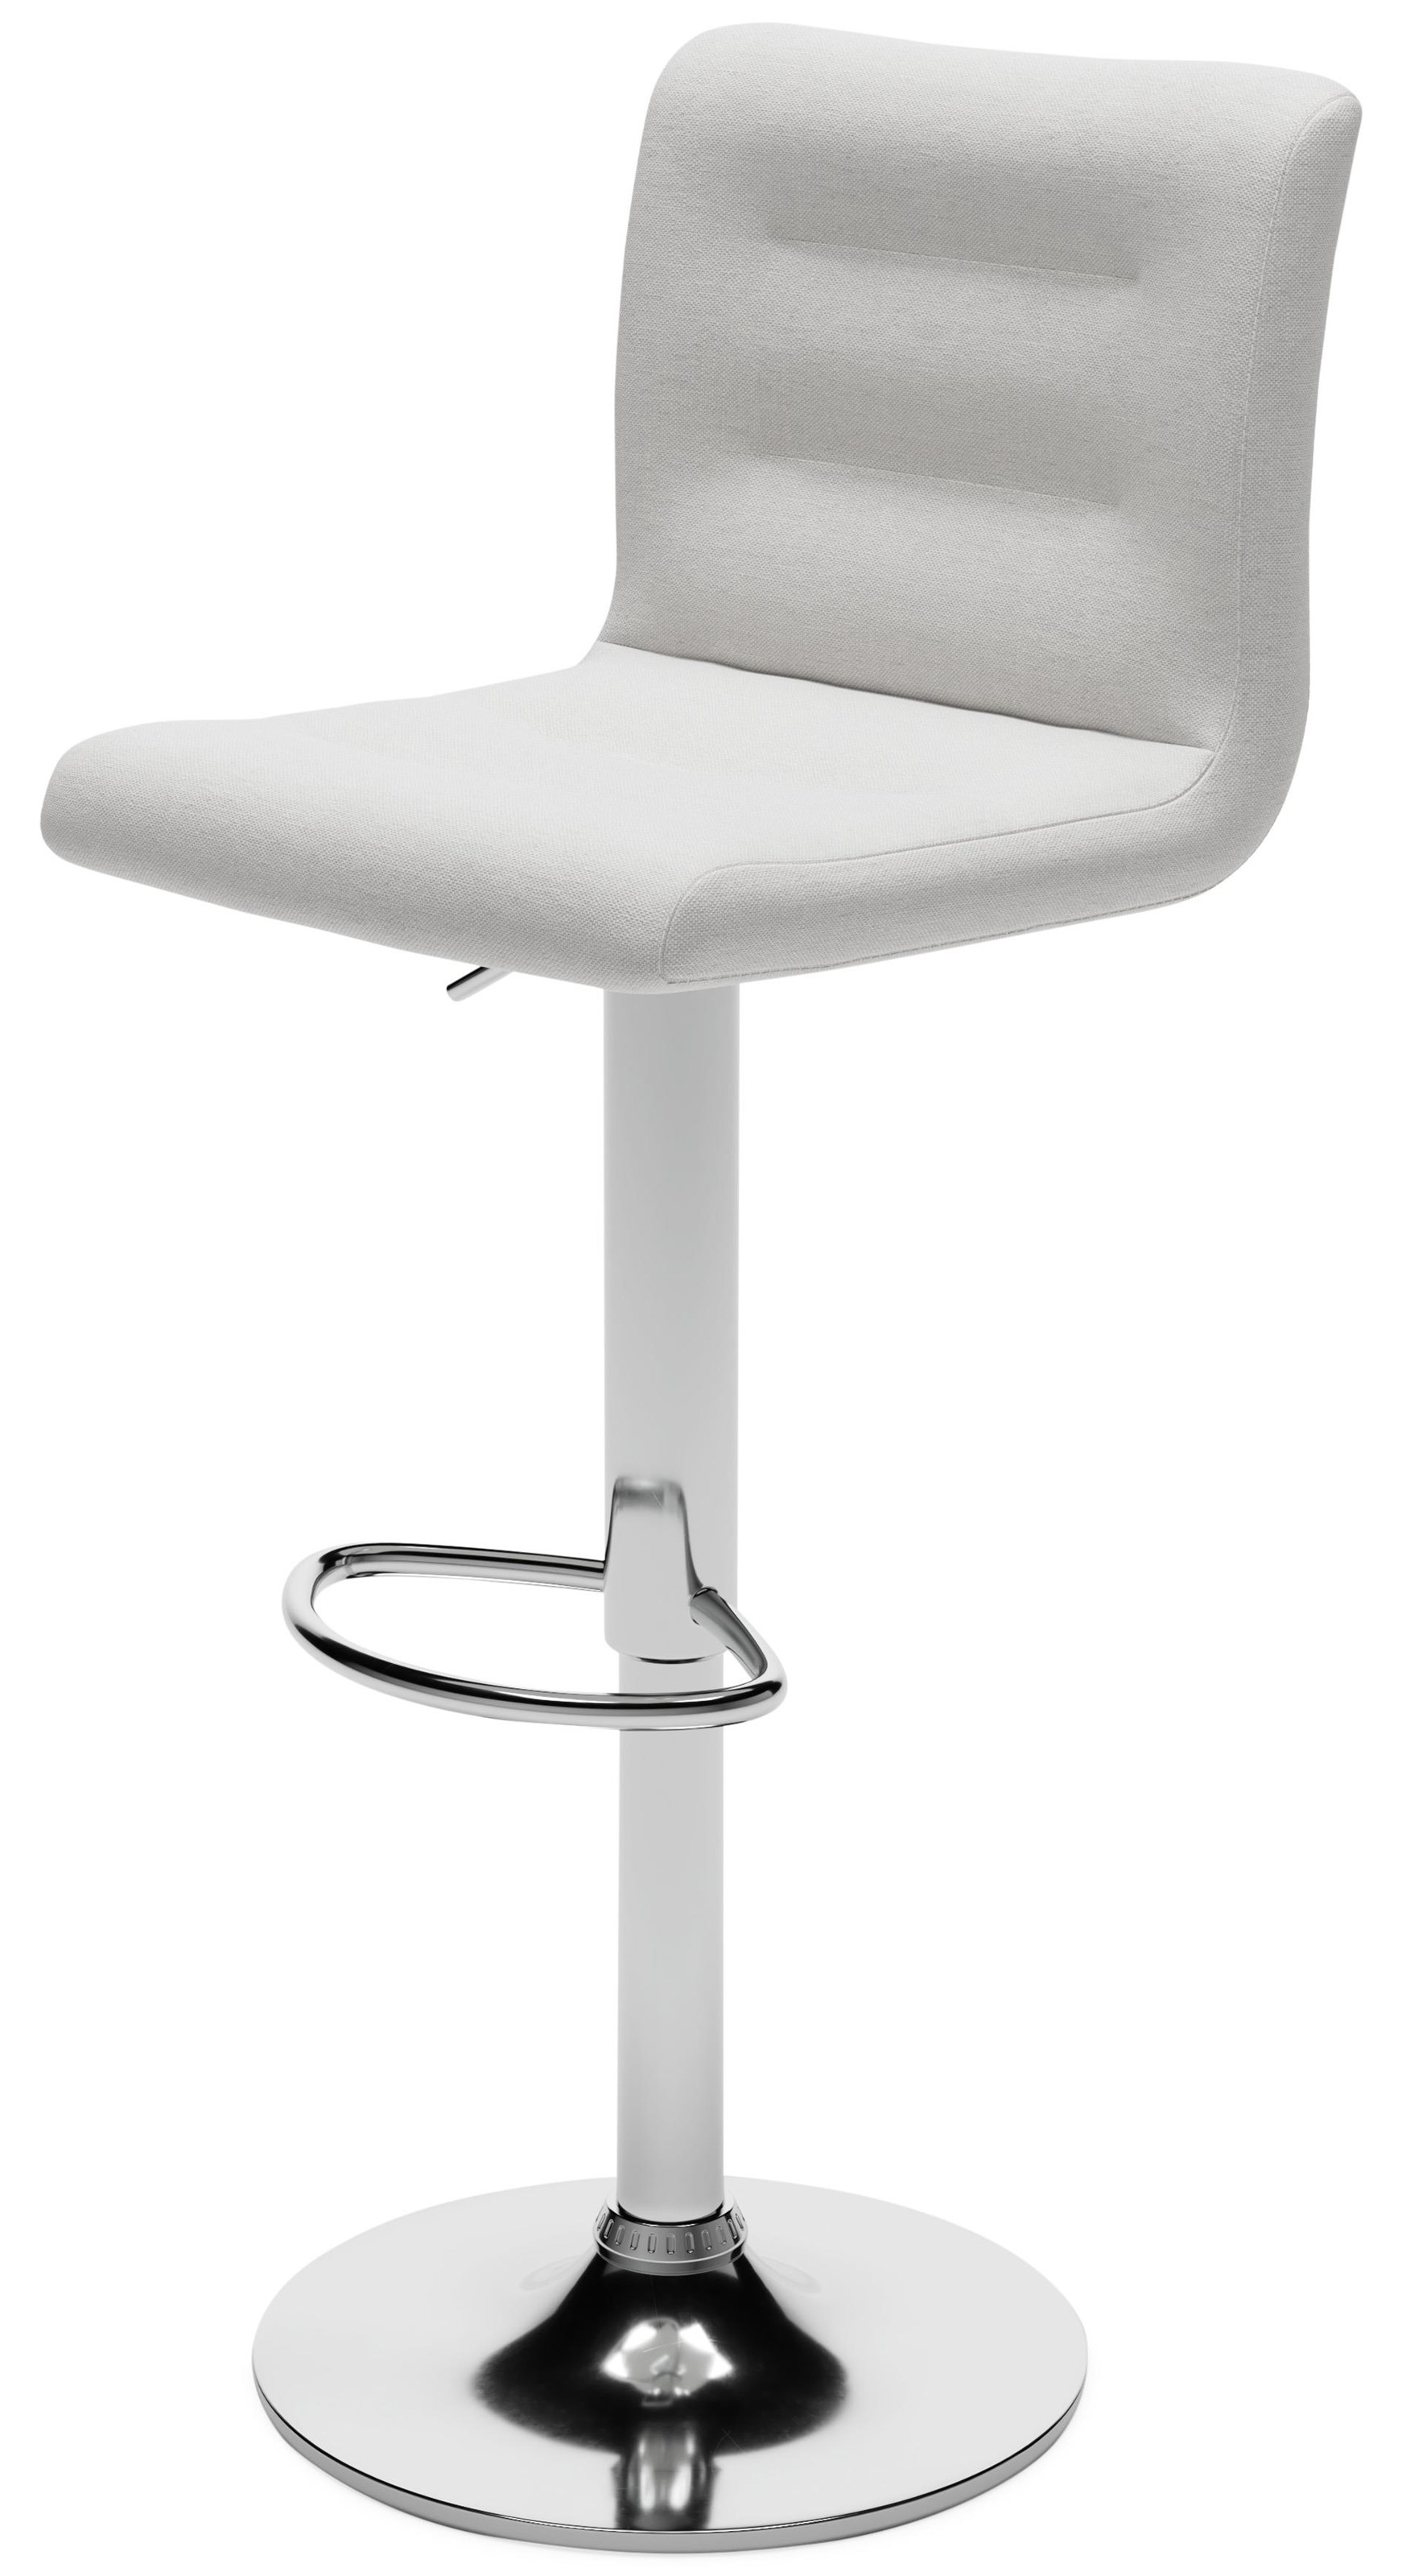 Pollzen Adjustable Height Upholstered Swivel Bar Sto by Signature Design by Ashley at Sam Levitz Furniture